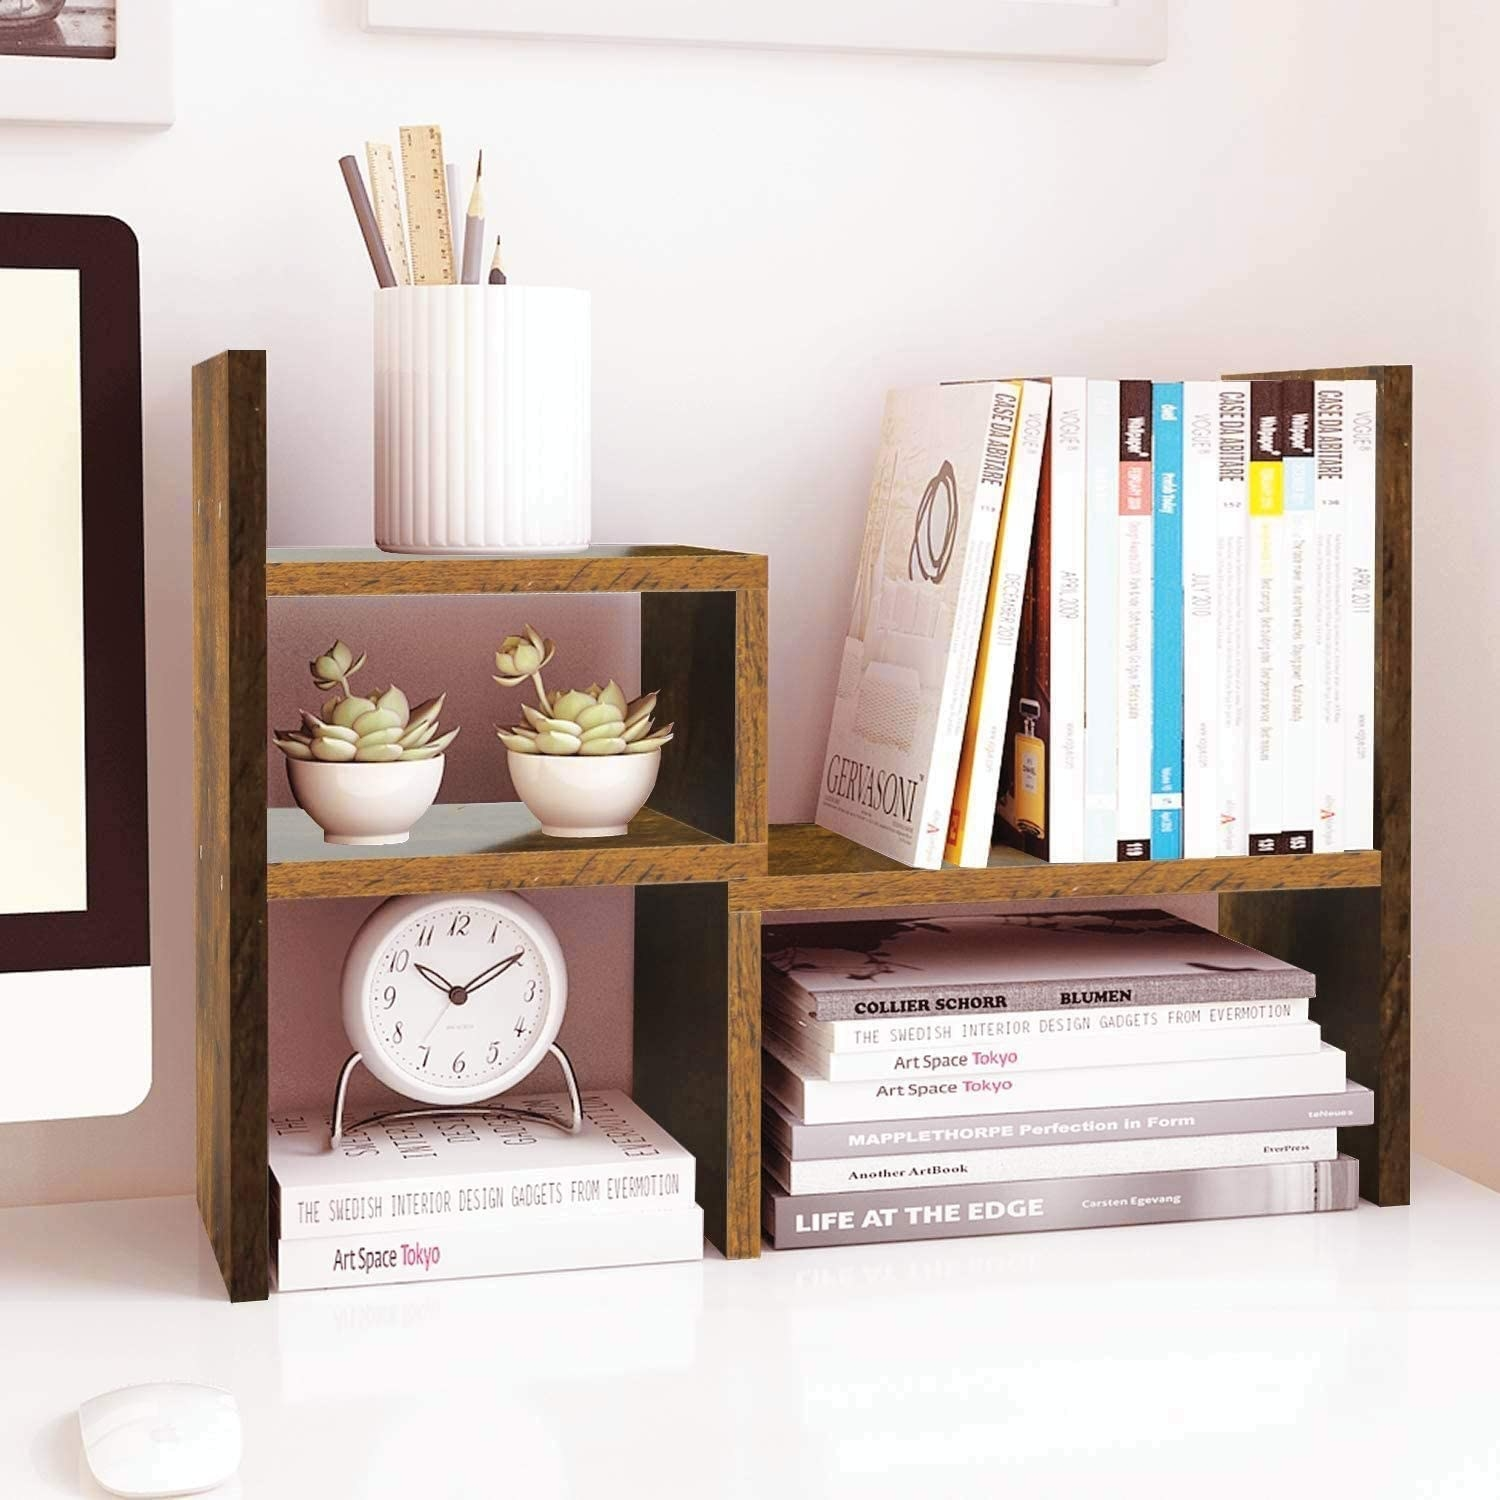 A set of desk shelves in a light wood that fit several books, plants, and desk accessories